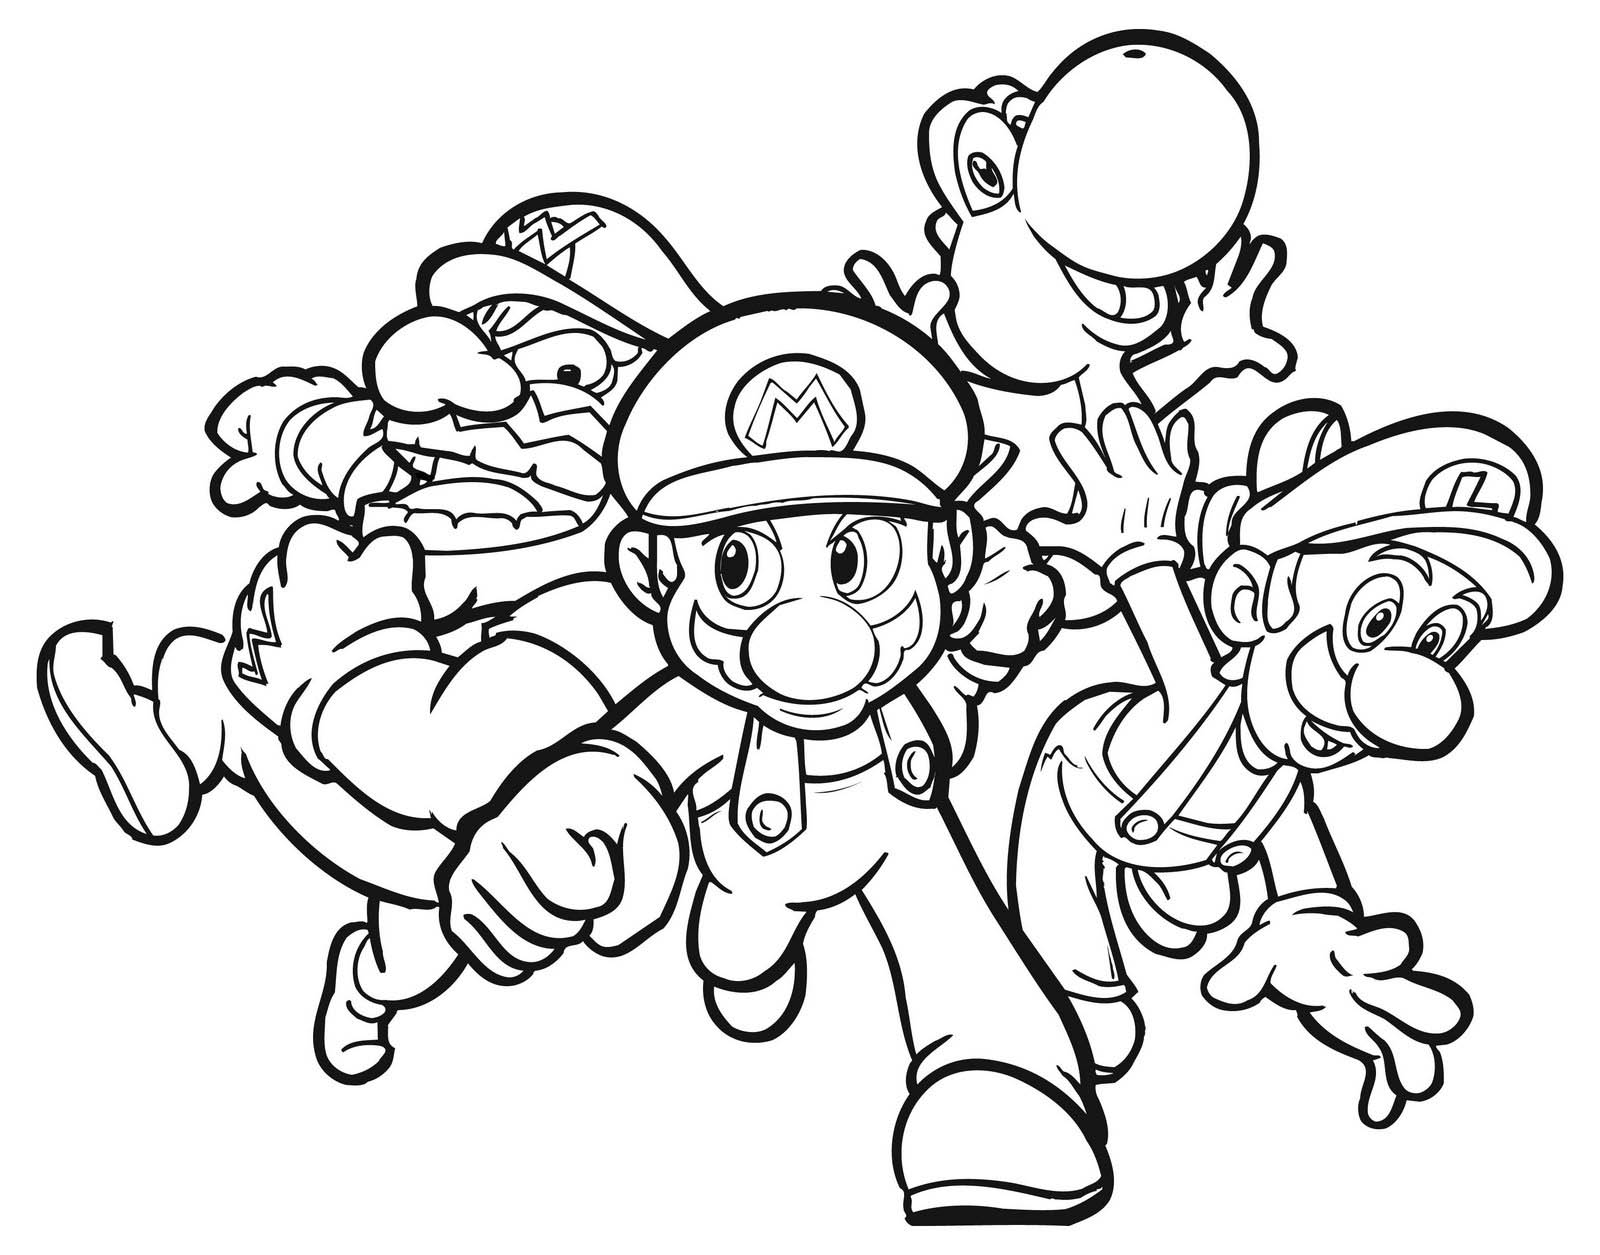 super mario soccer coloring pages - photo#20